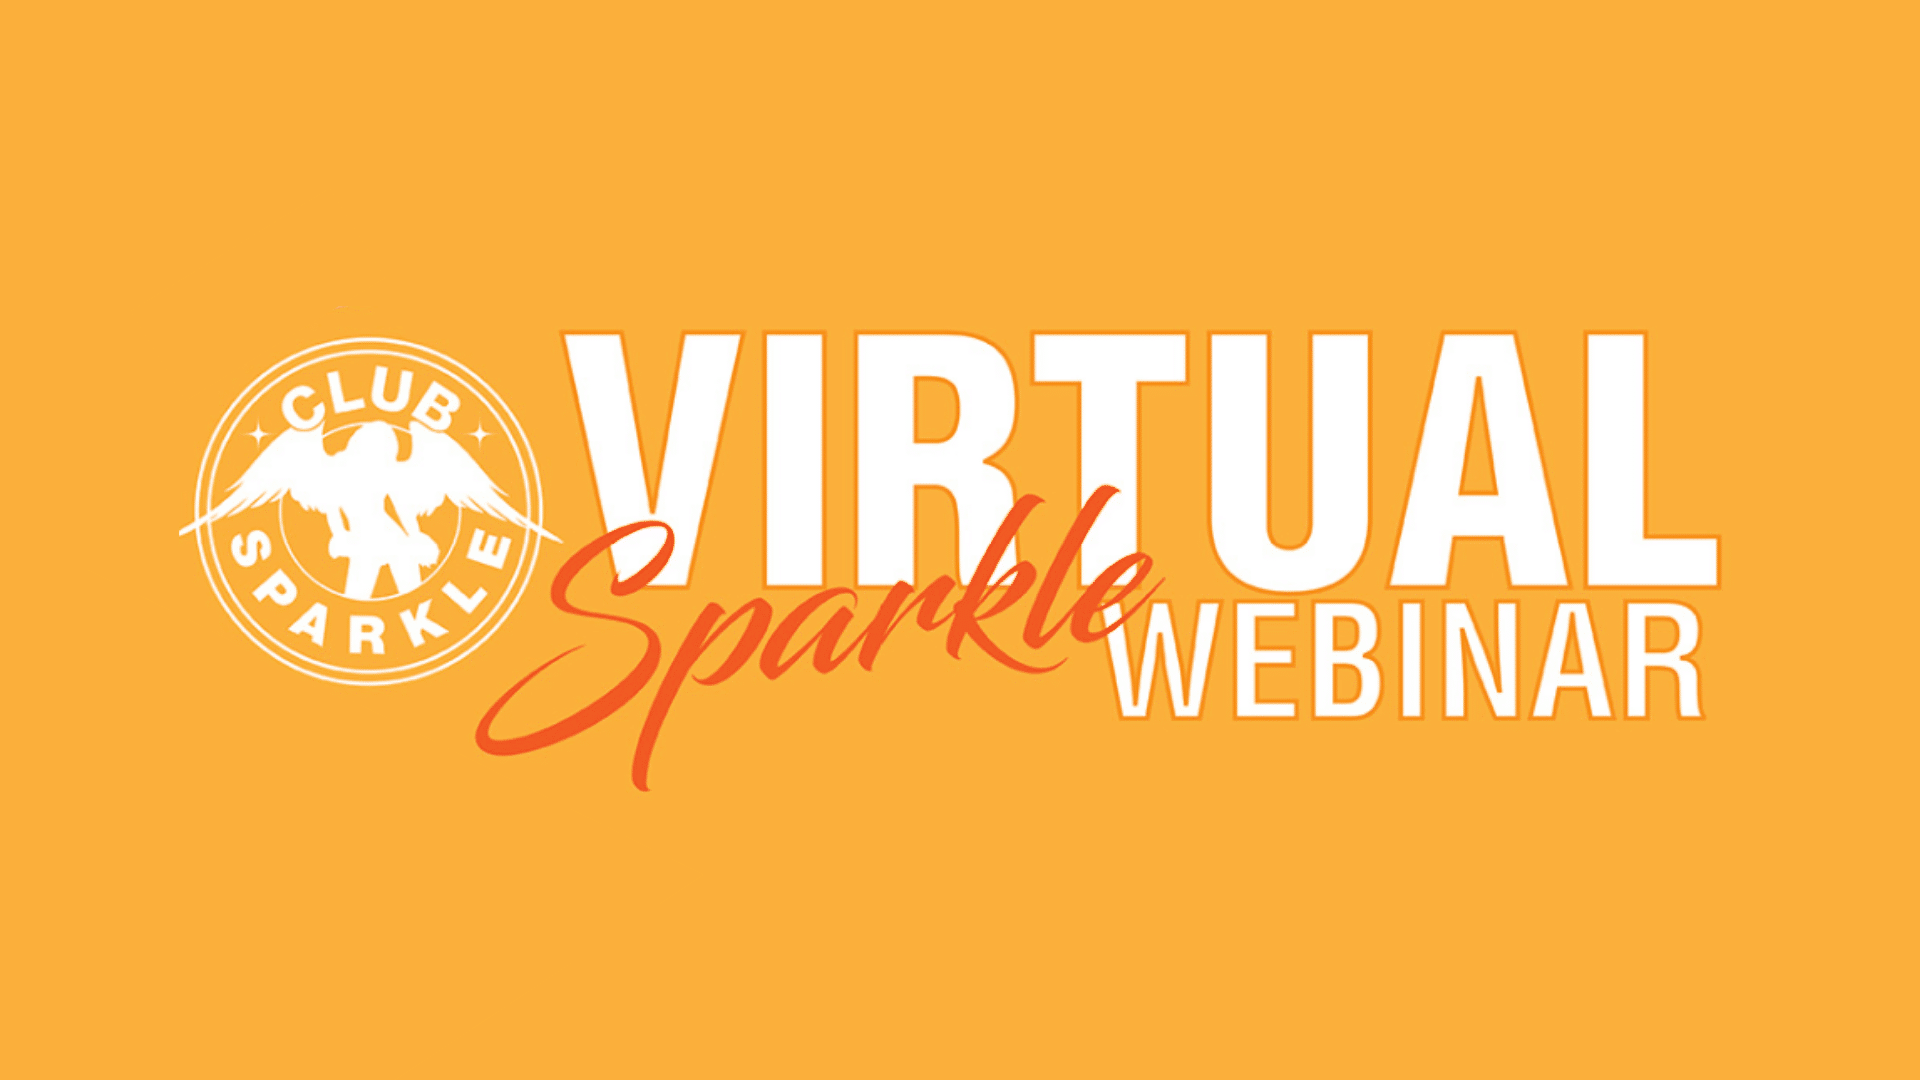 Virtual Sparkle Webinar (Members only)